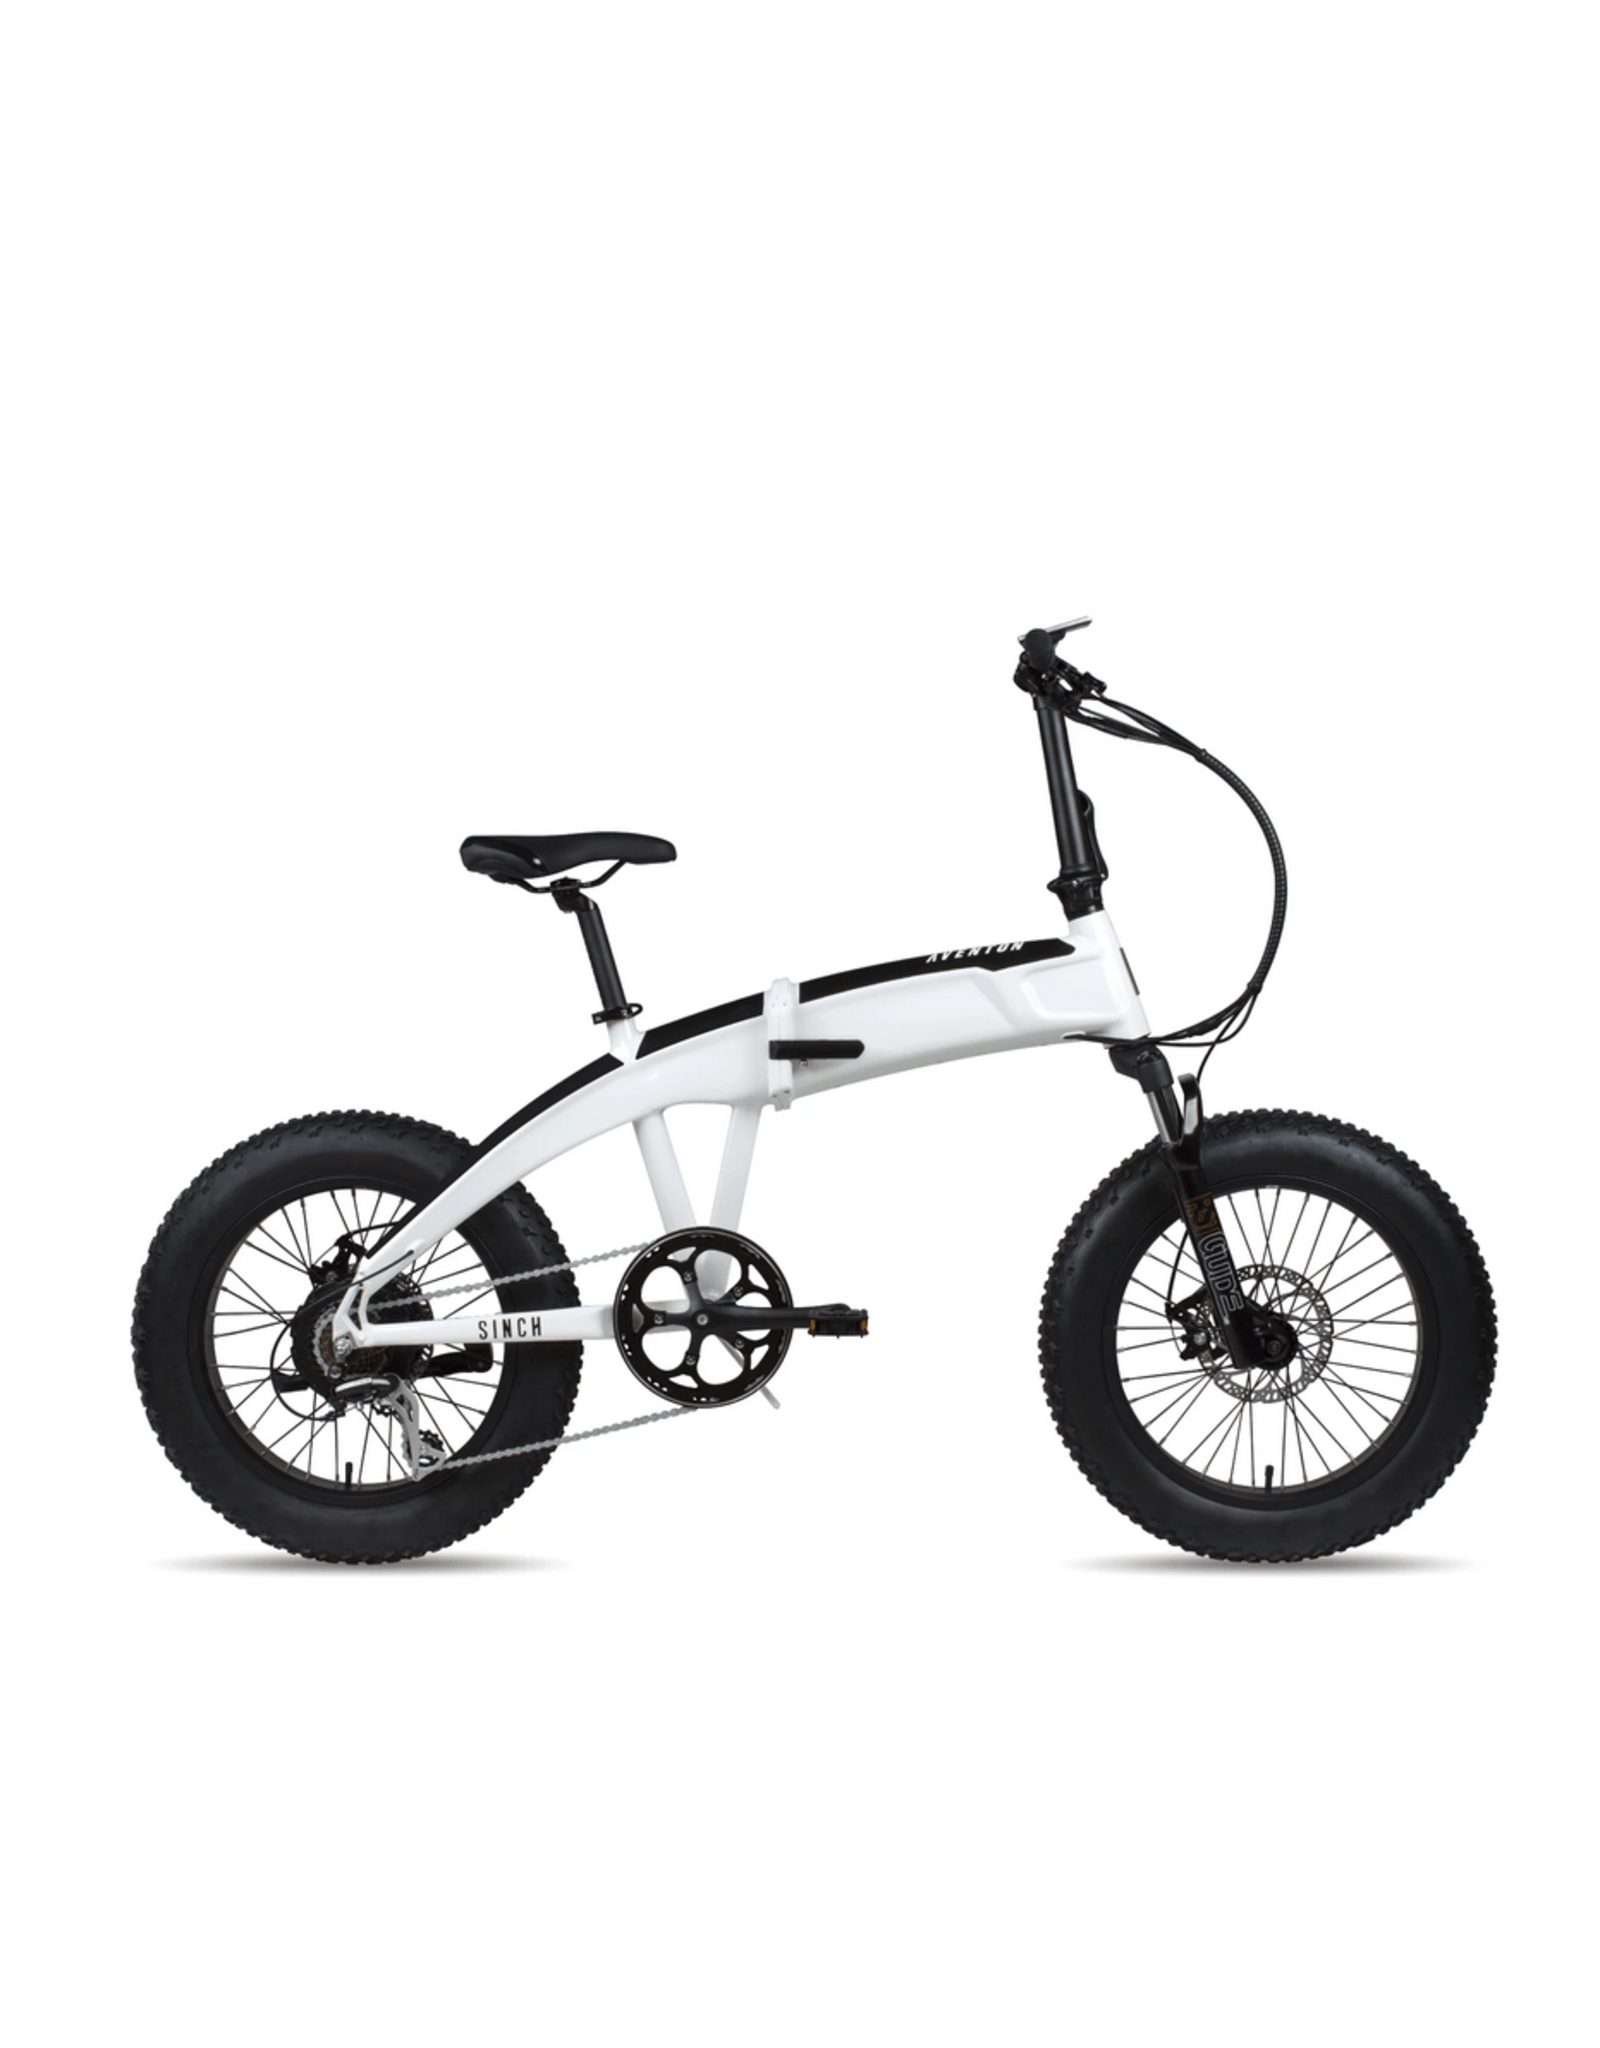 Folding Bmx Bike : folding, Aventon, Sinch, Folding, Garage